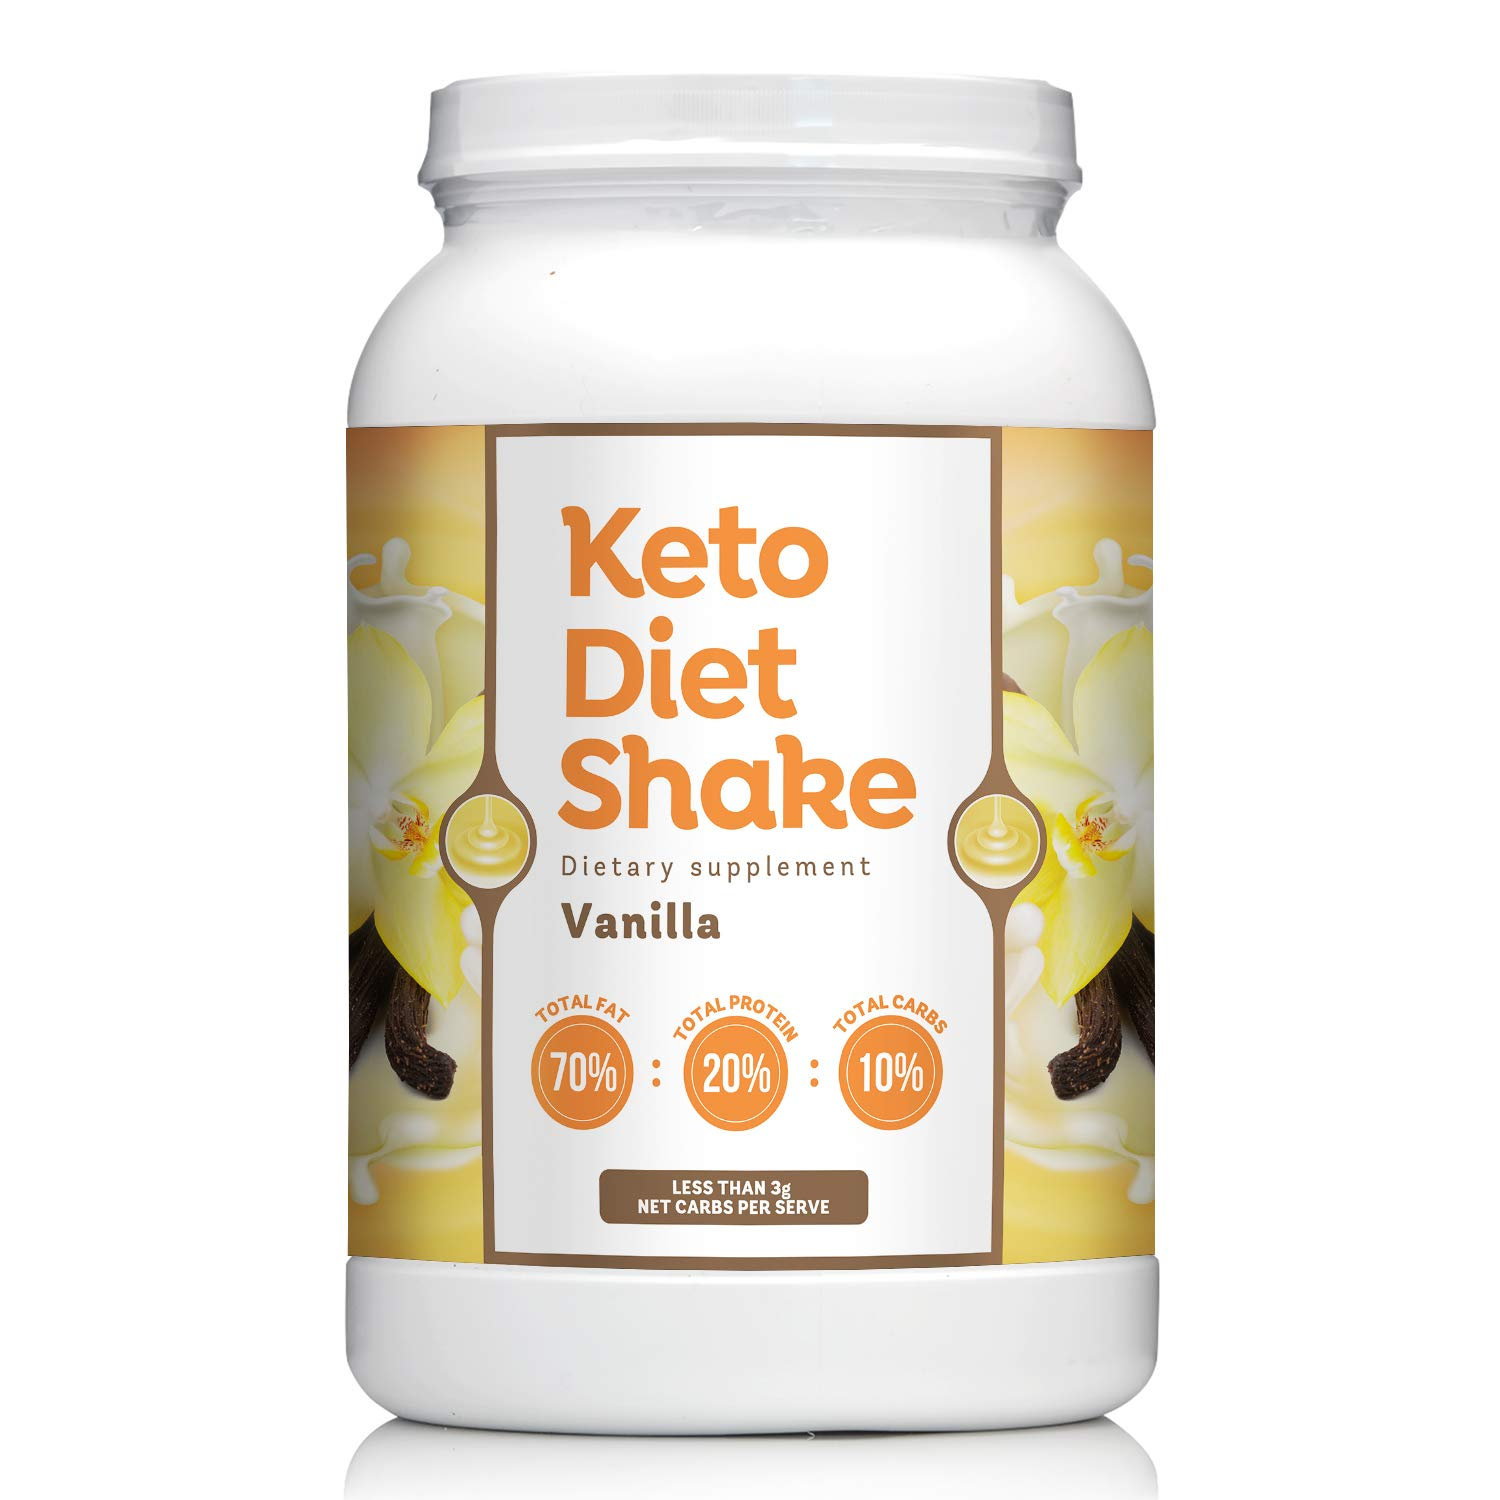 Keto Diet Shake with 70:20:10 Ratio Keeps You In Ketosis-Perfect For Low Carb High Fat Lifestyle - Less than 3g Net Carbs per Serve - Vanilla Flavor - 27 Servings by Keto lifestyle